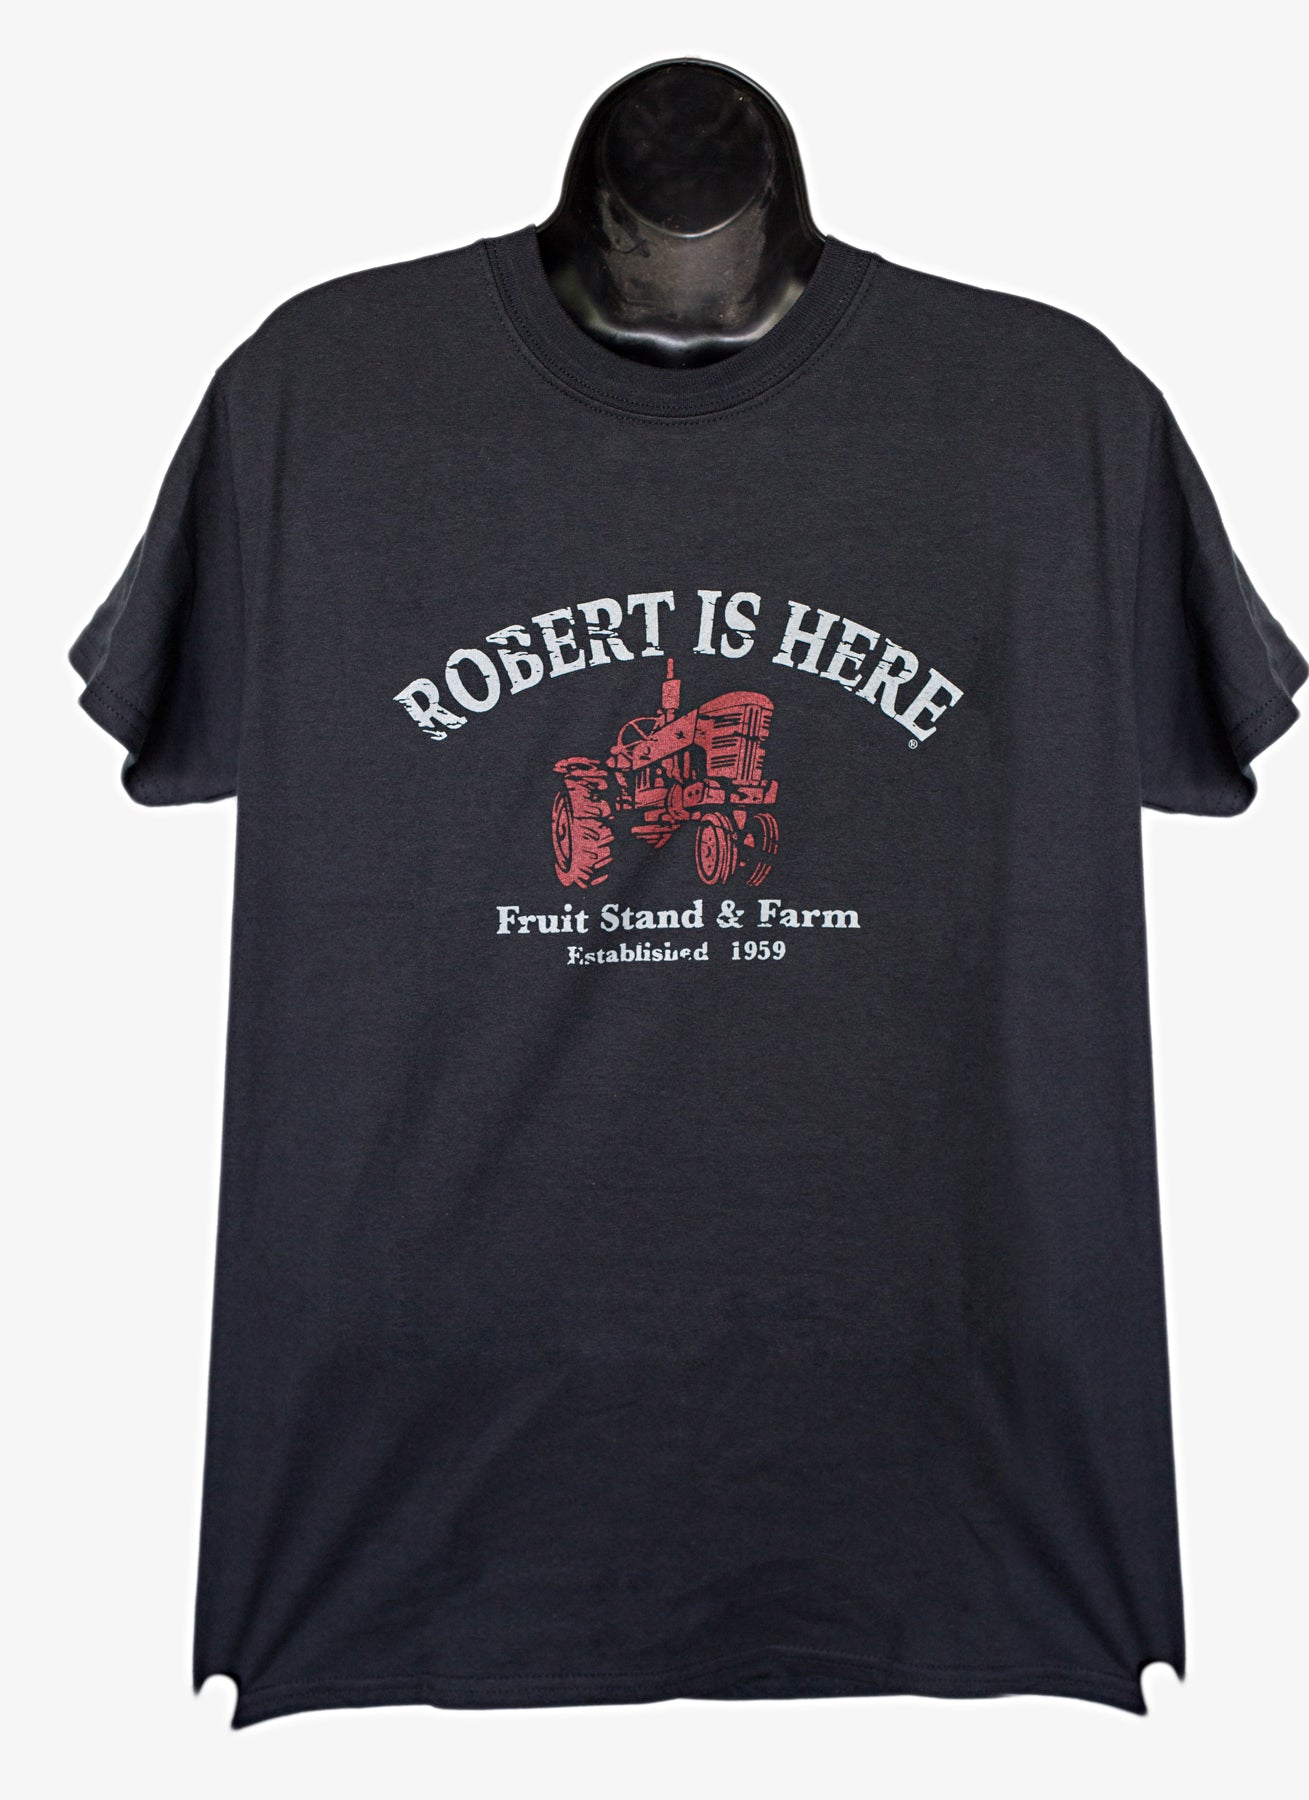 Robert Is Here T-shirt - Black